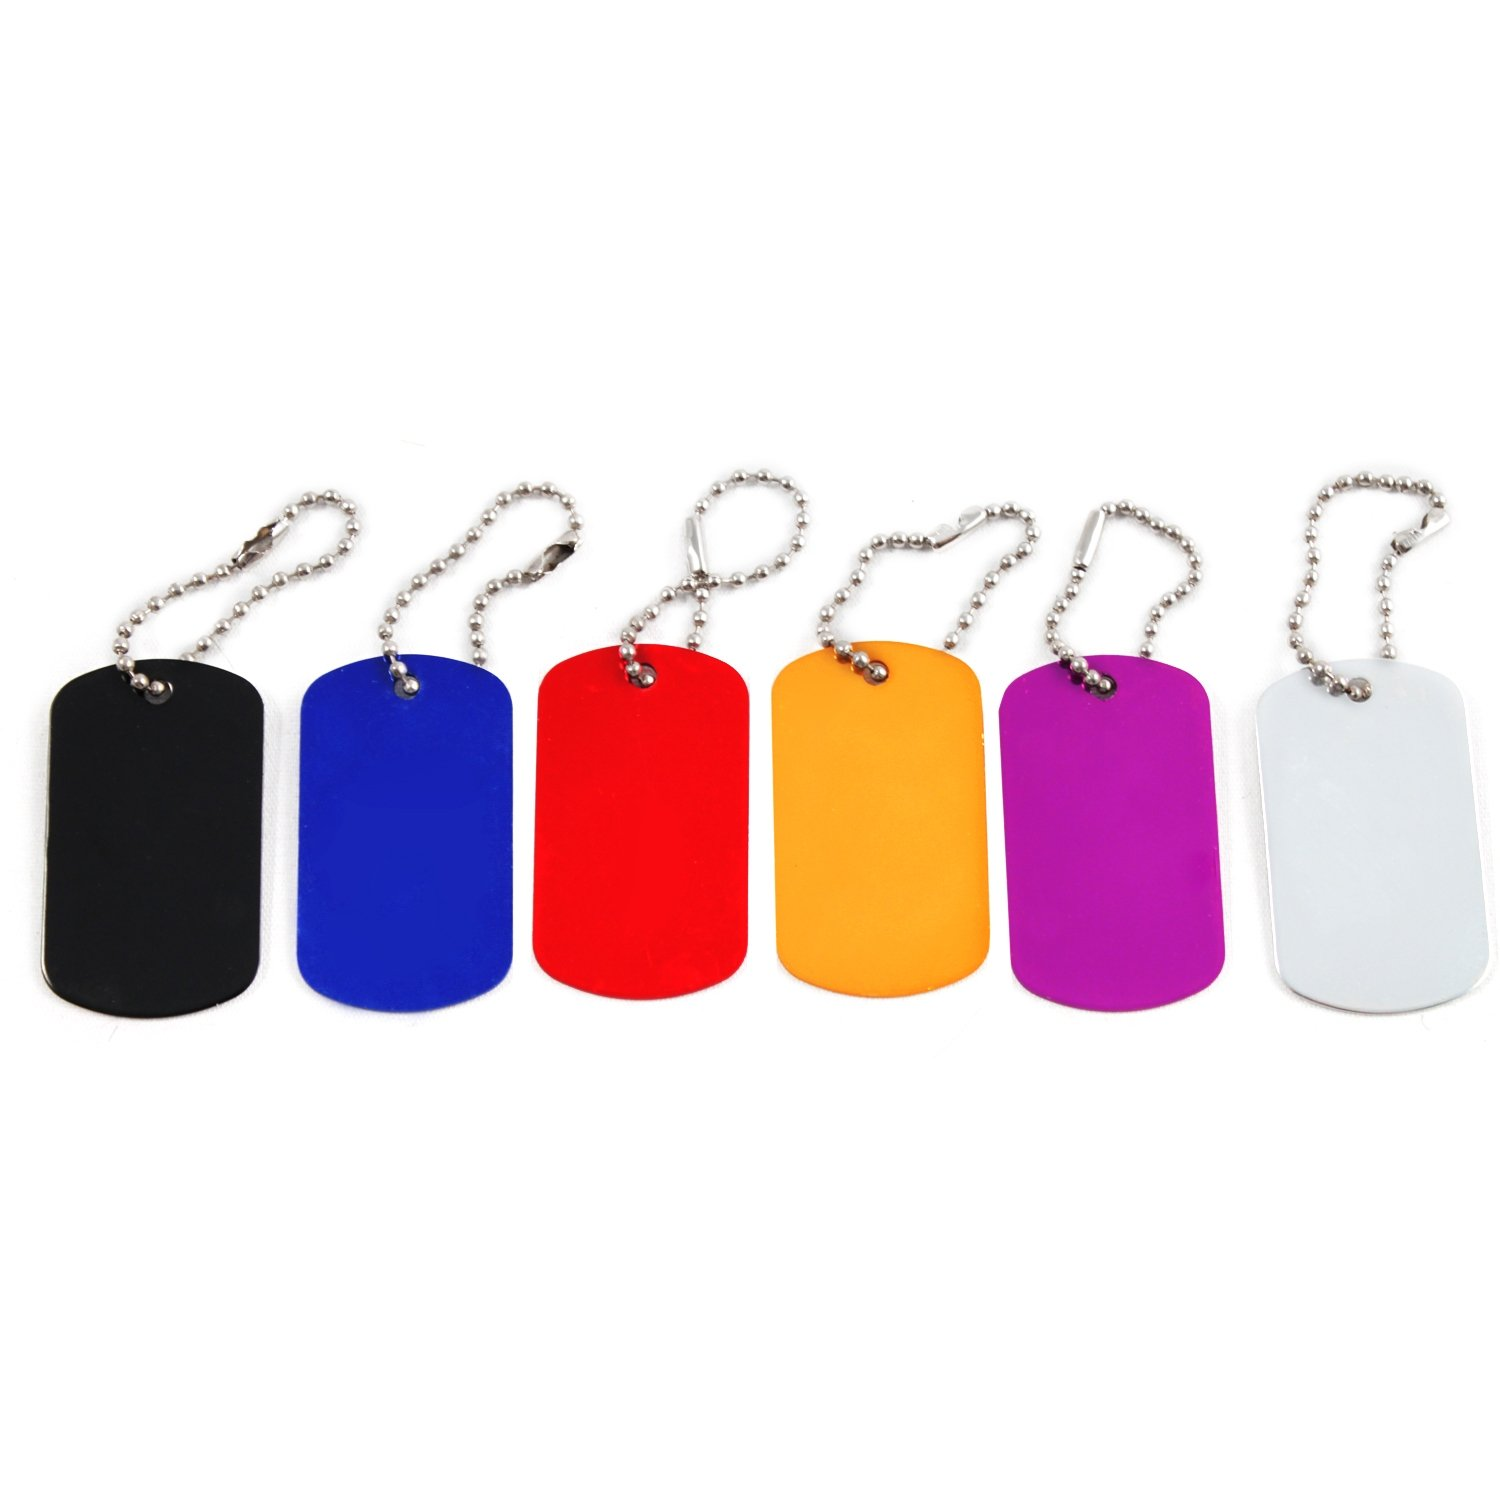 Aluminum Dog Tags Engraveable Blank Key Chains Military Identification 12 Pack